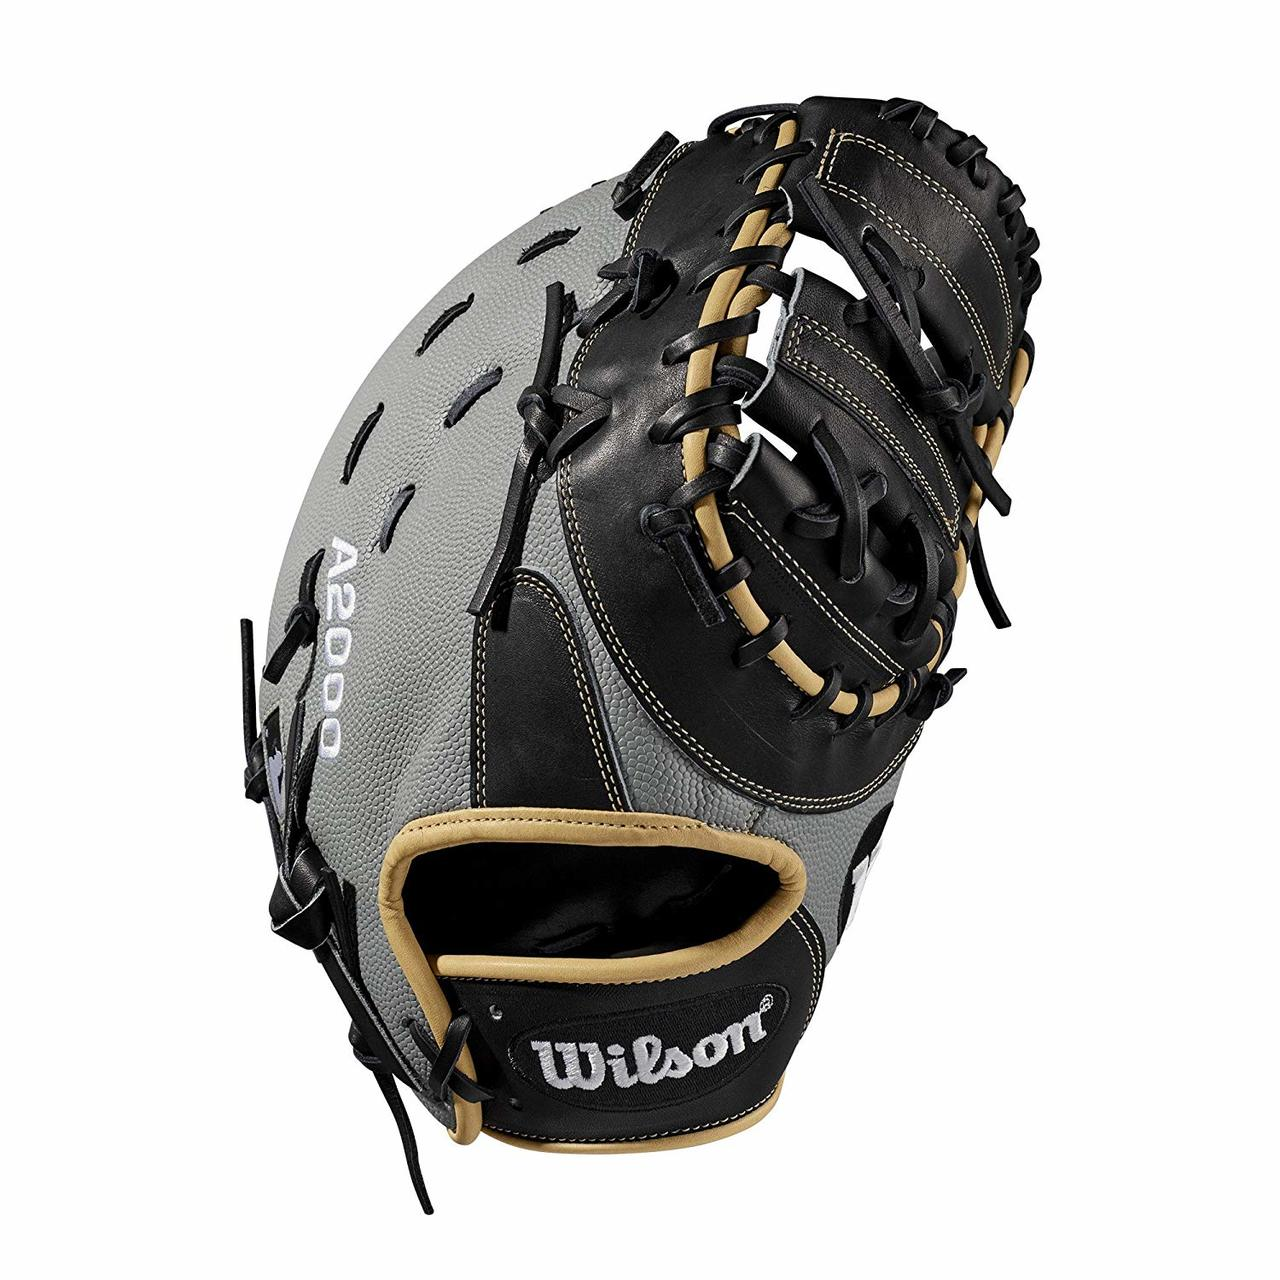 wilson-a2000-first-base-mitt-1617ss-12-5-right-hand-throw-2019 WTA20RB191617SS-RightHandThrow Wilson 887768702021 First base model; double horizontal bar web; available in right- and